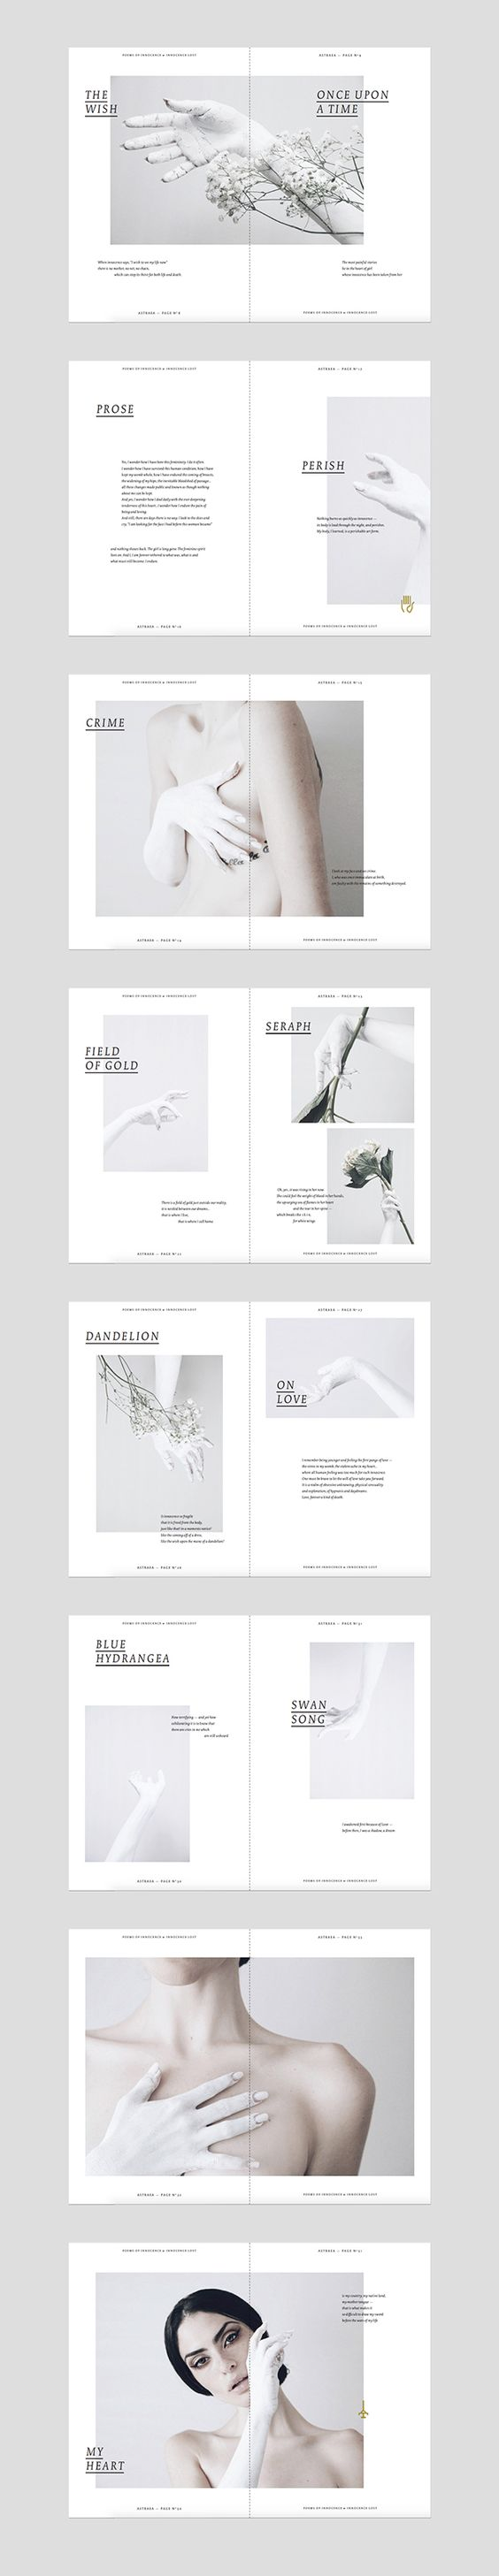 Like the use of white space and type over image ASTRAEA on Editorial Design Served